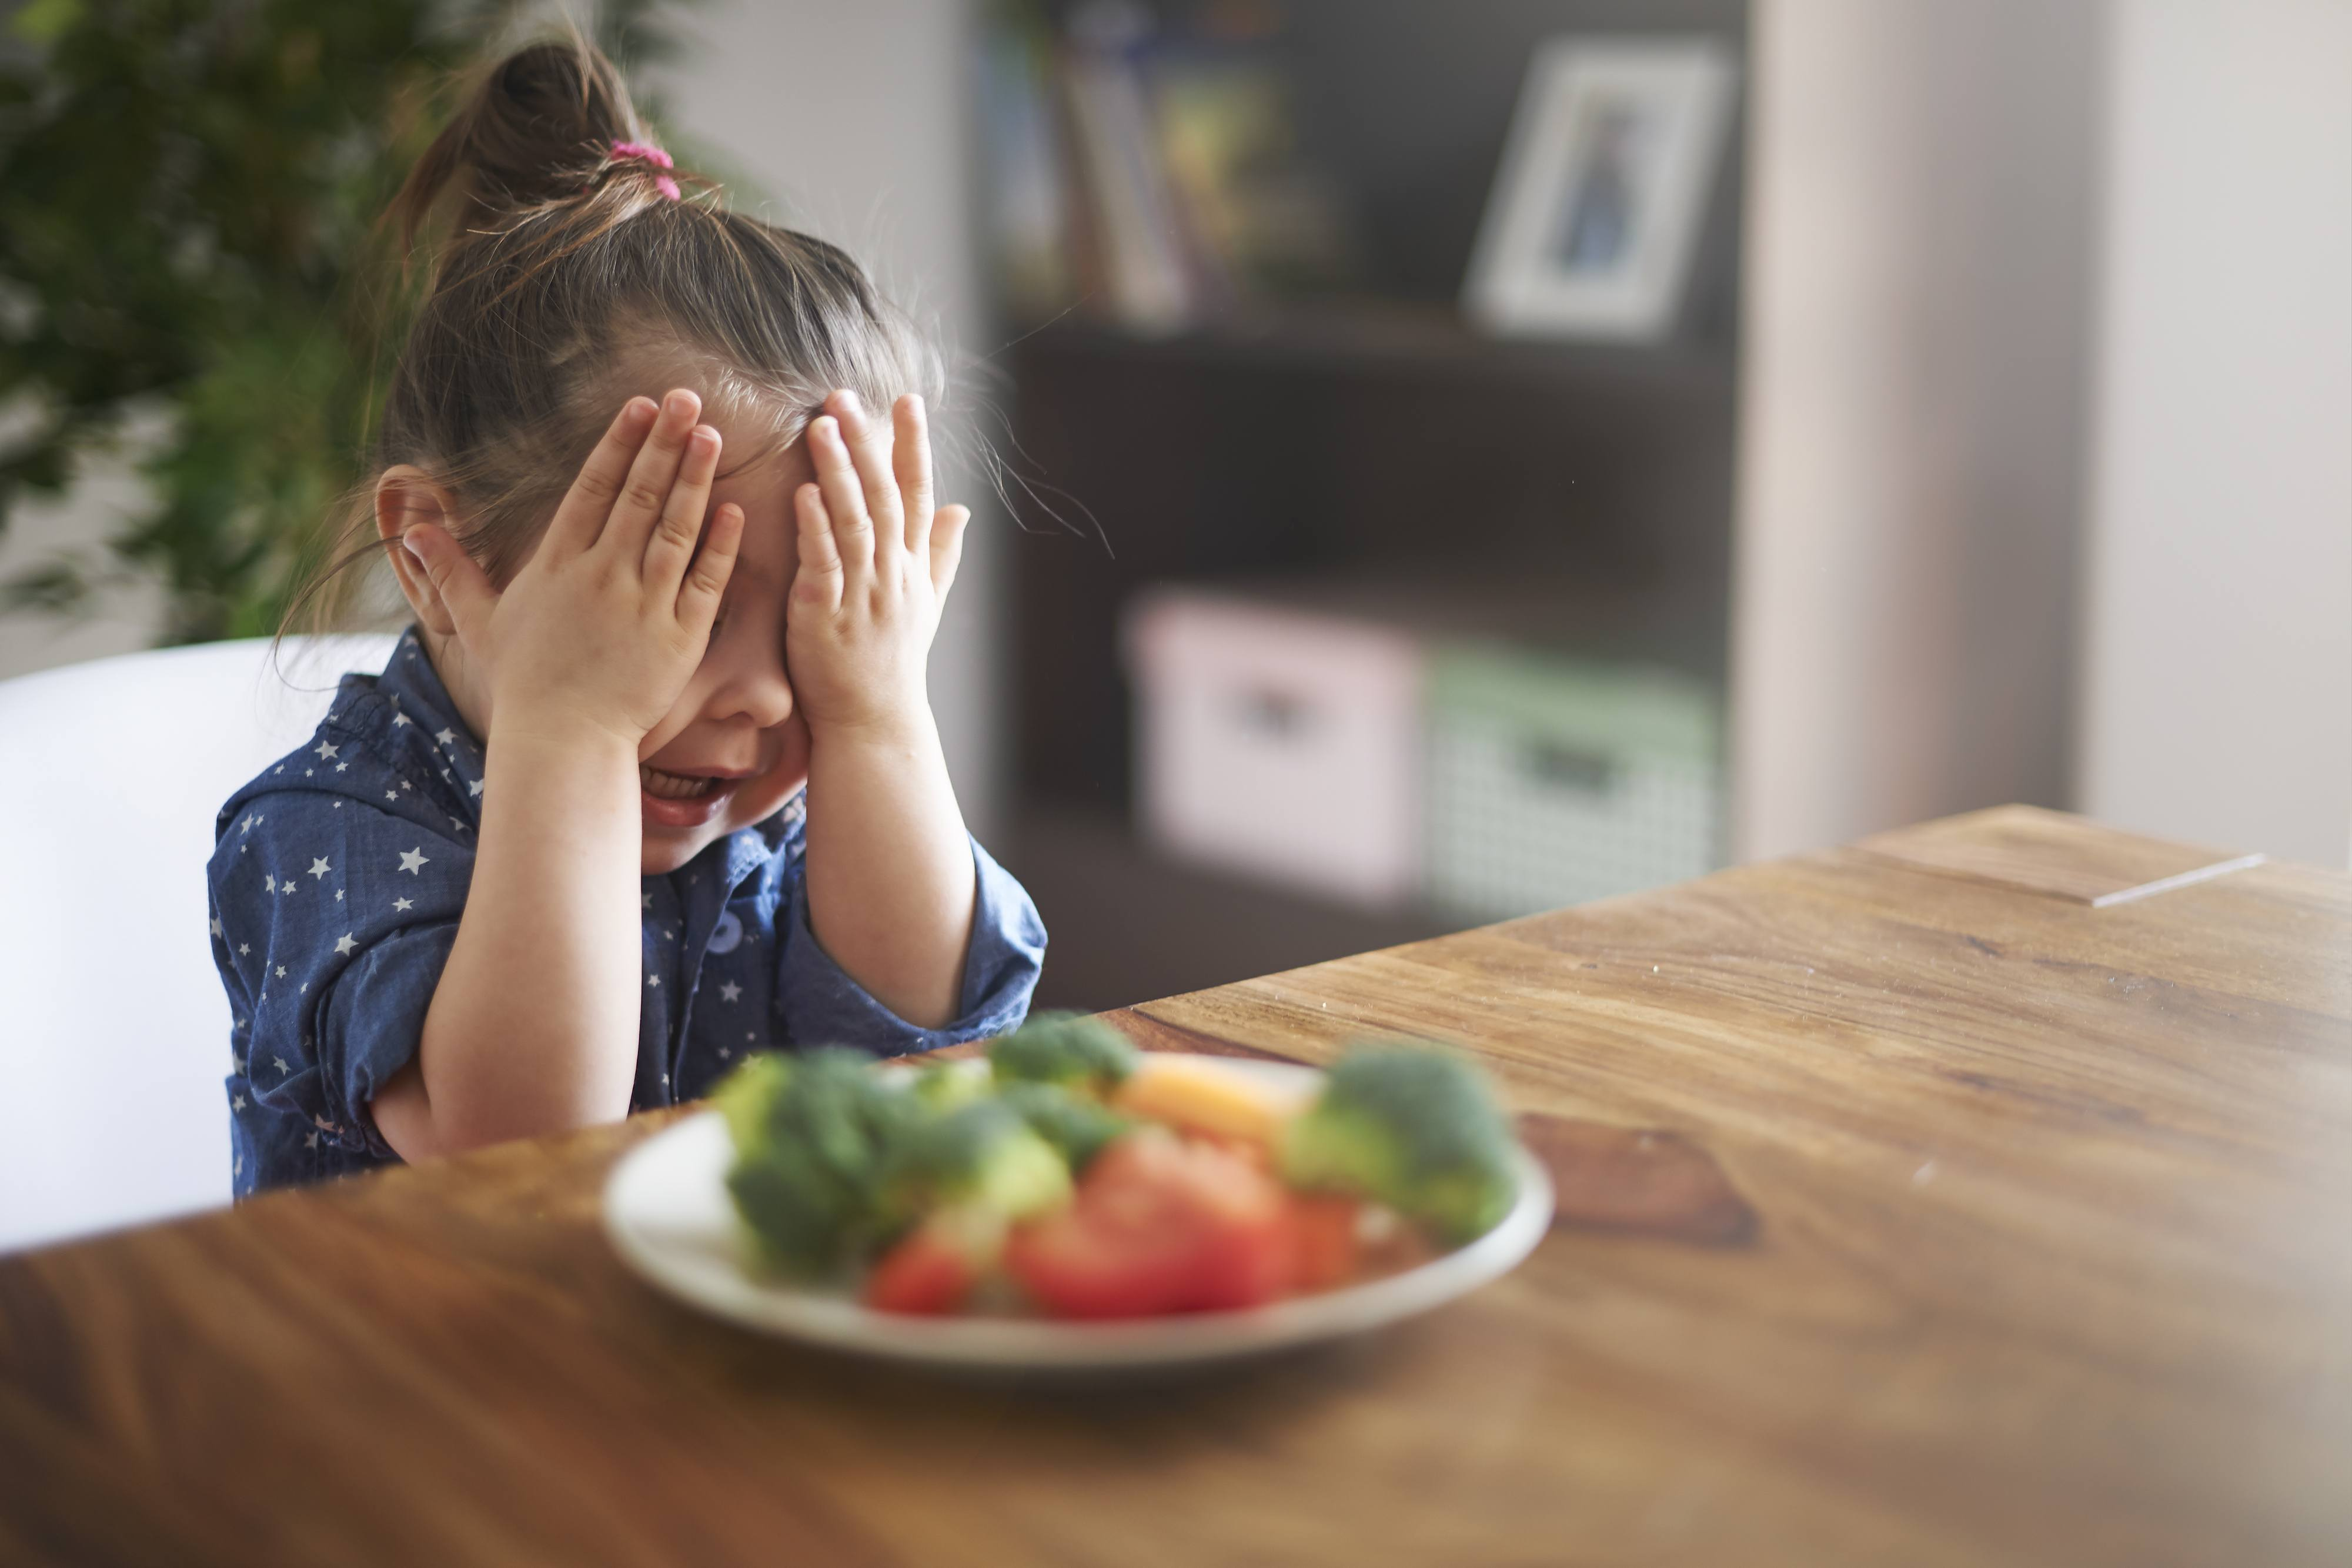 Forming dietary habits. A girl refuses to eat vegetables.